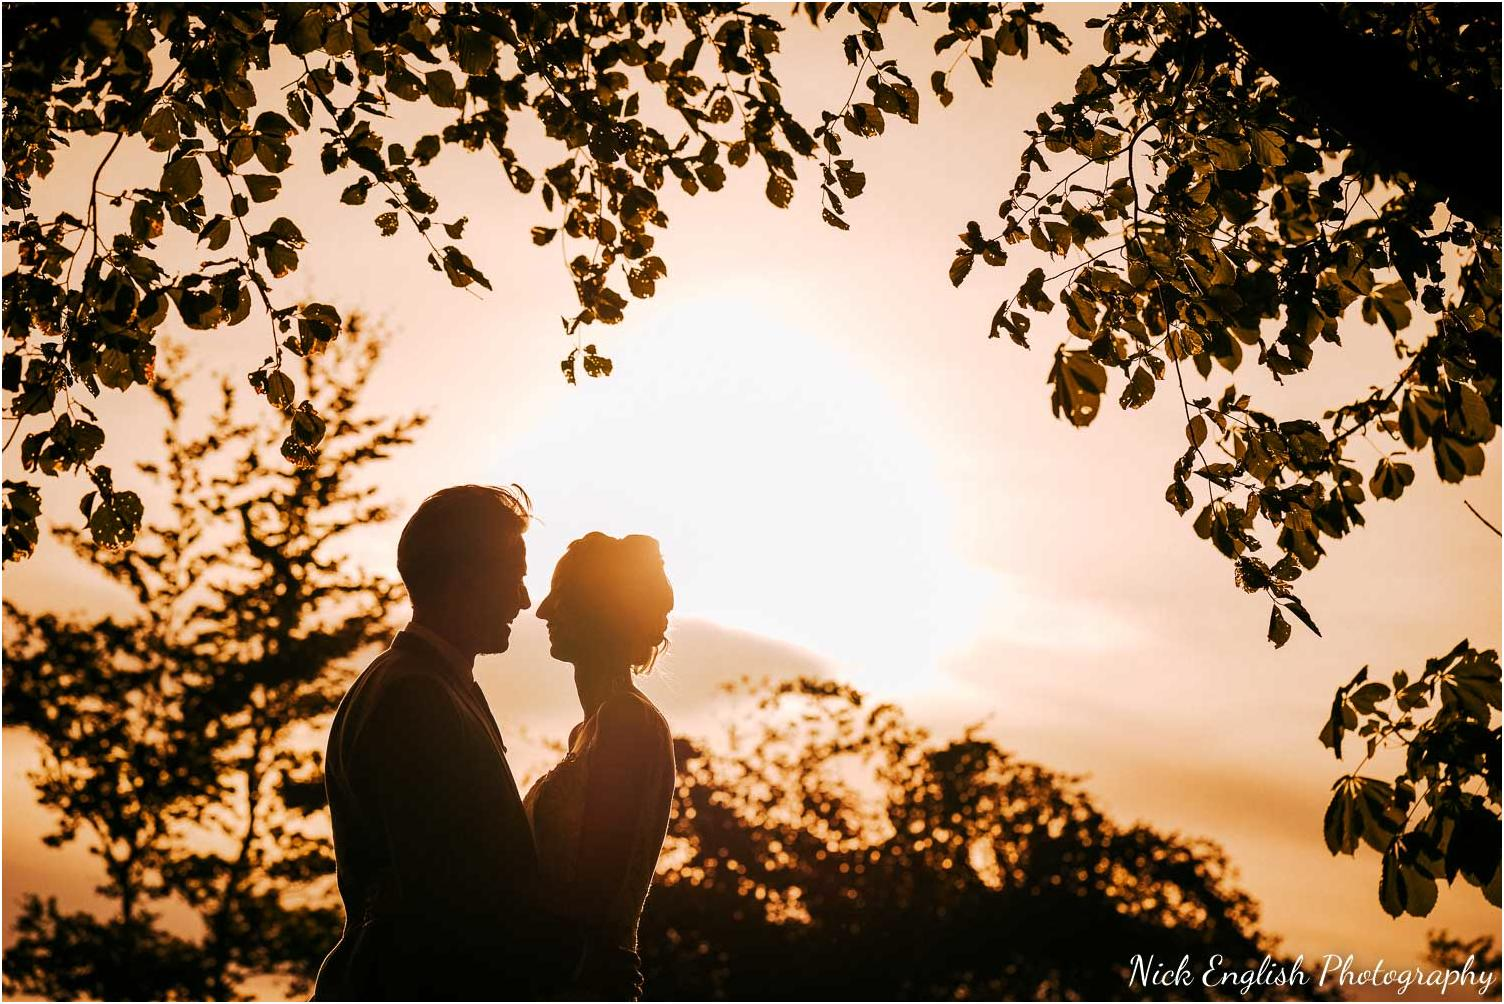 Wedding photographs at browsholme hall at sunset by the lake